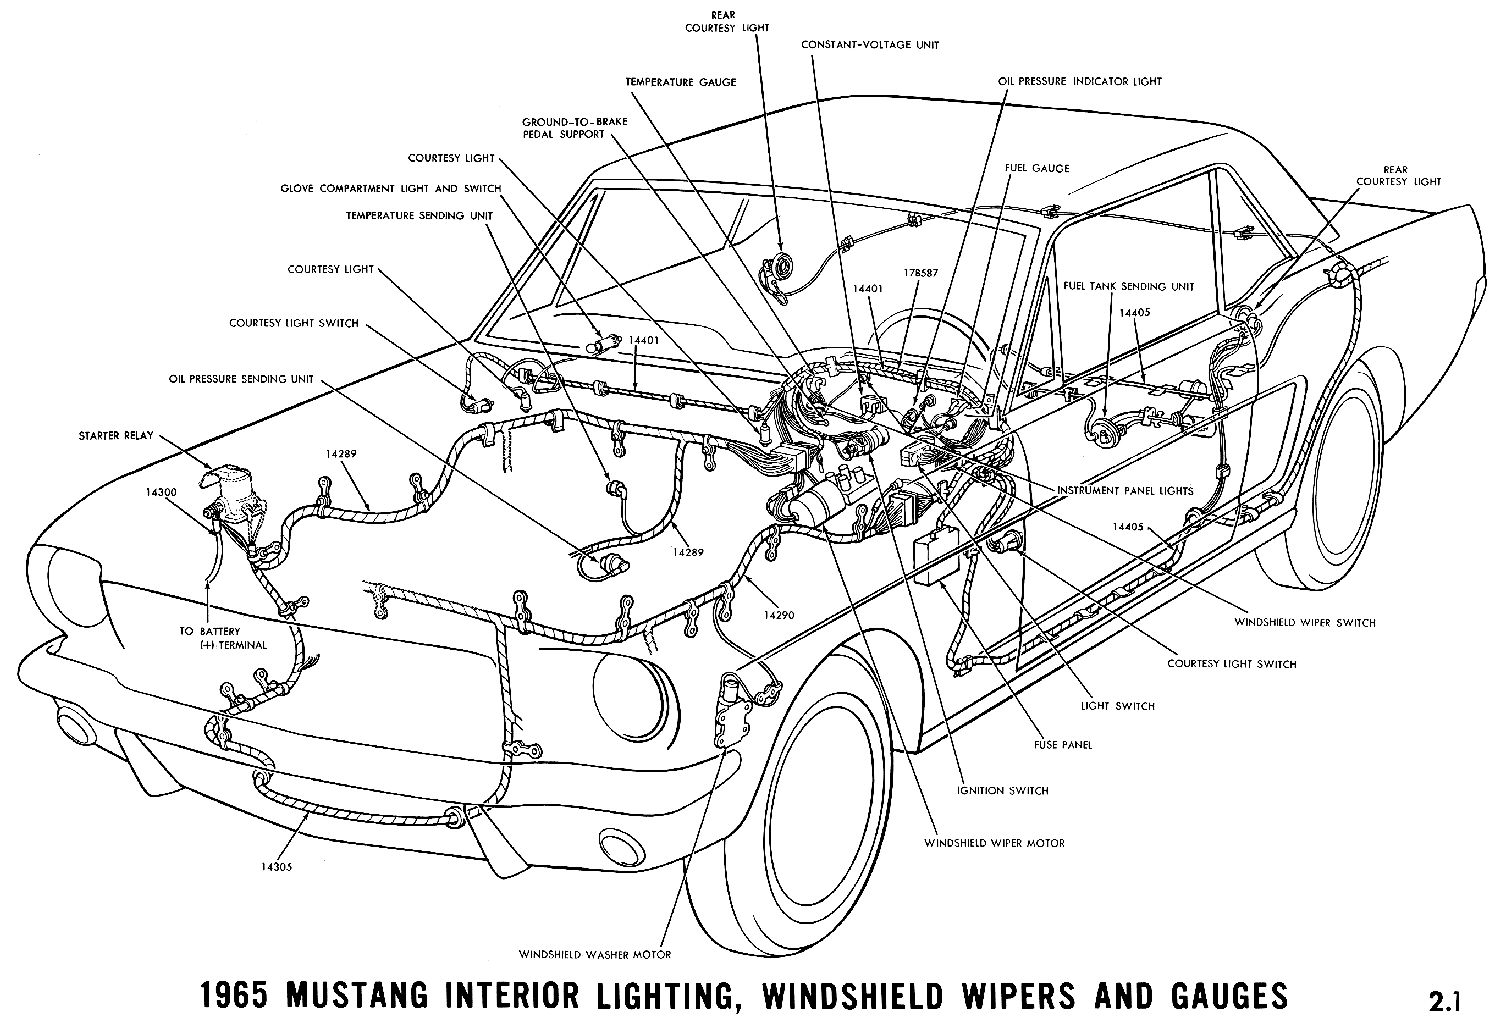 1965f 1965 mustang wiring diagrams average joe restoration Jeep Dome Light Wiring Diagram at virtualis.co